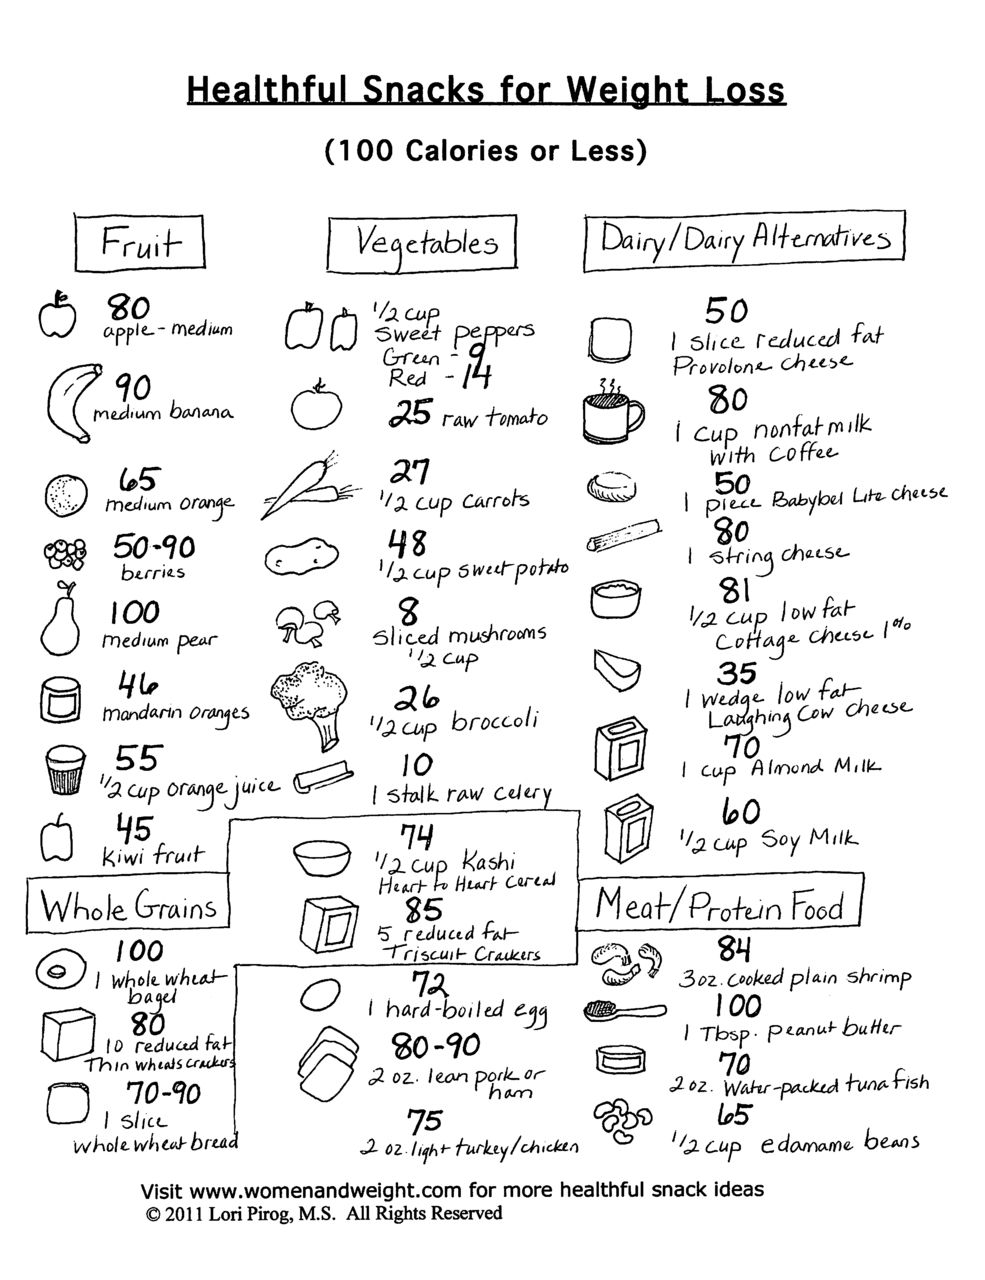 Healthful snacks for weight loss